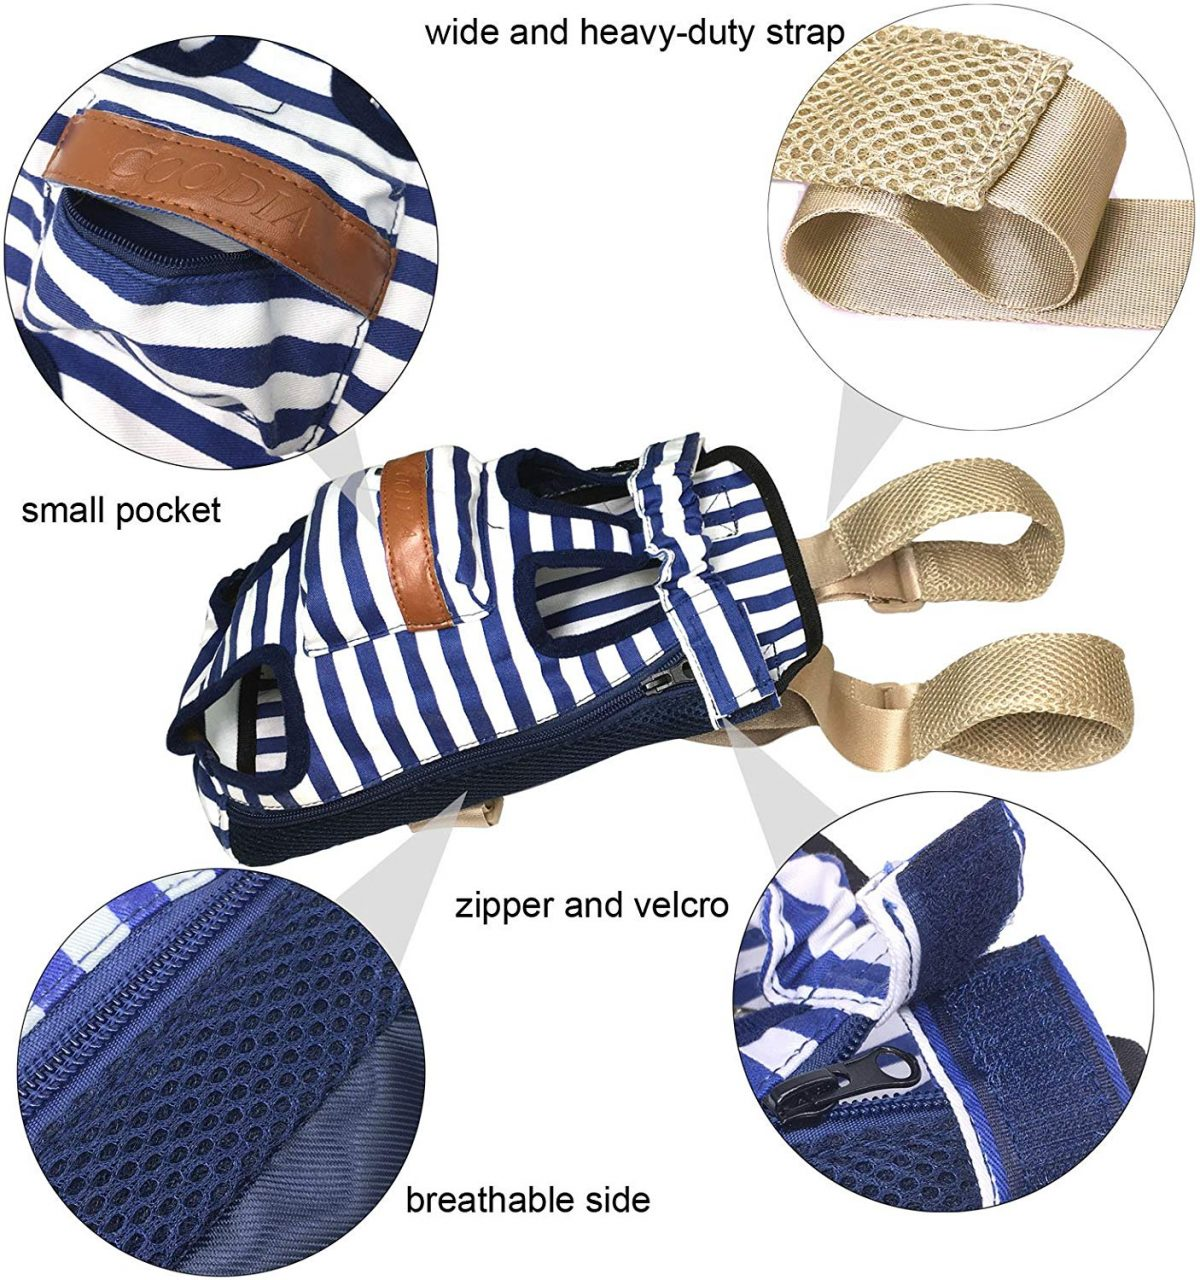 Photo of the COODIA dog bagkpack with blue and white stripes, holes for the dogs' limbs, and a dash of brown with zoomed in photos of the strap, pocket, zipper and velcro, and the mesh air ventilation